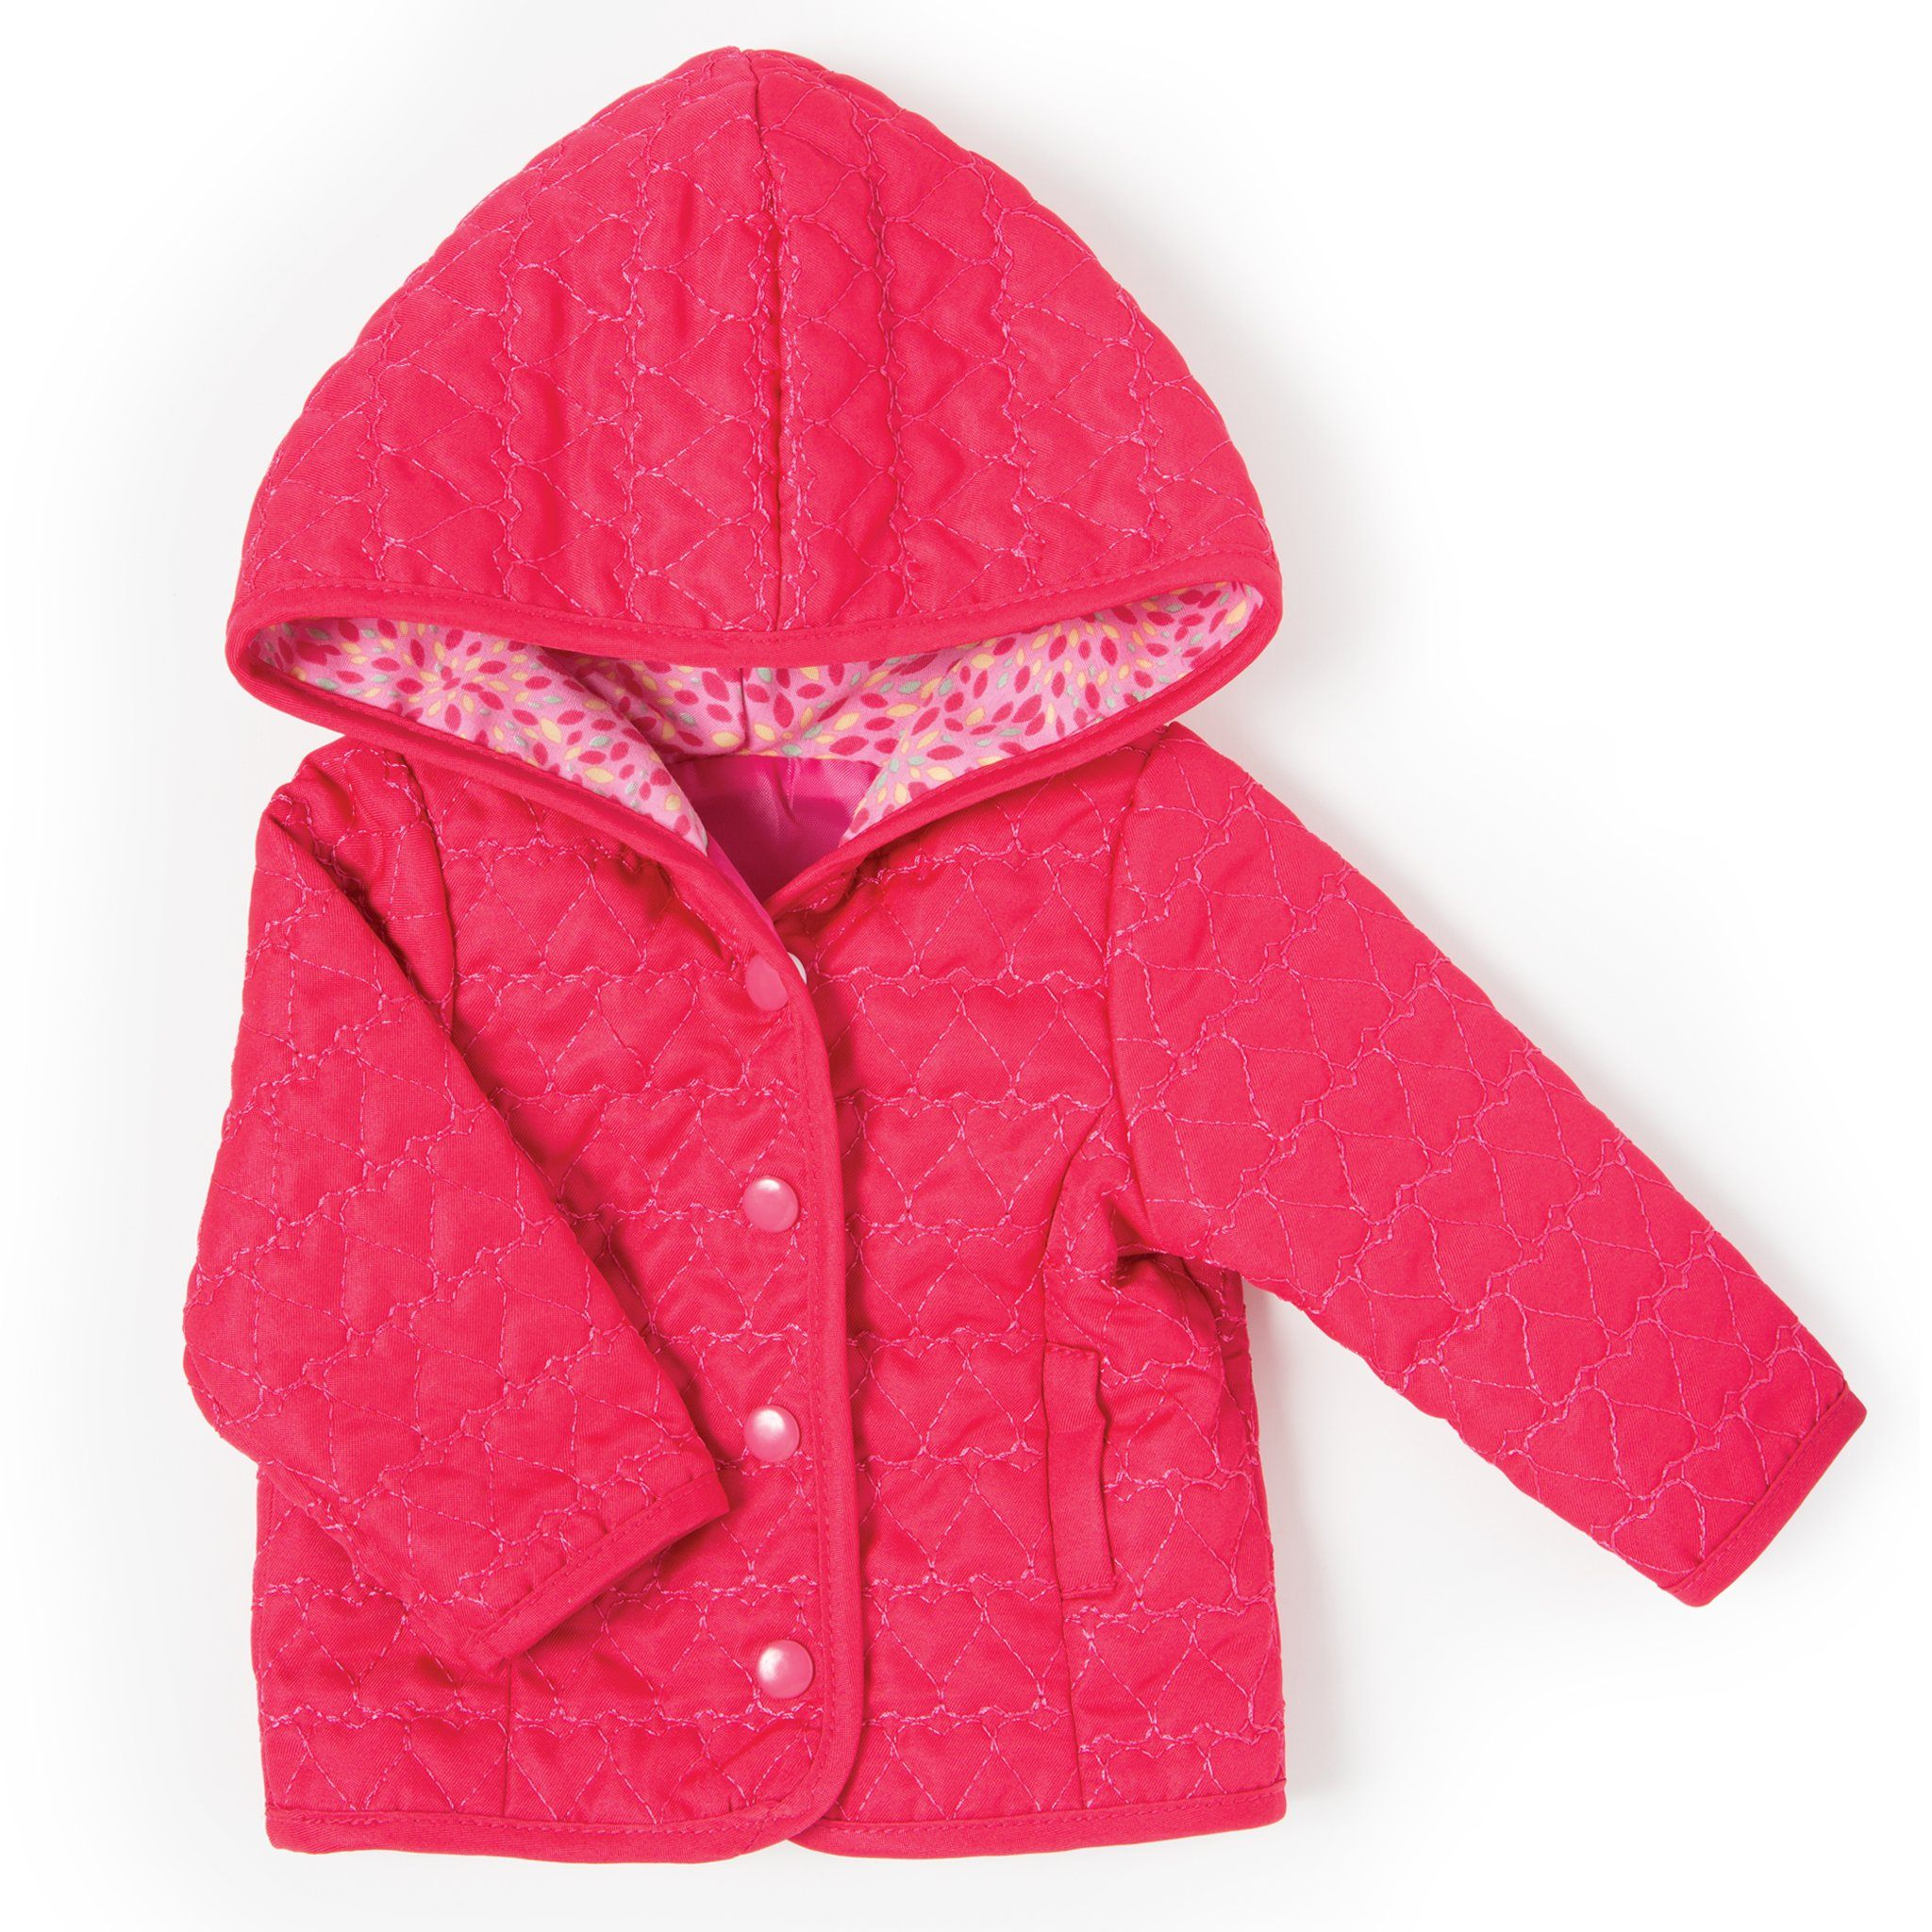 Out and About bright pink quilted hooded jacket with patterned lining fits all1 18 inch dolls.